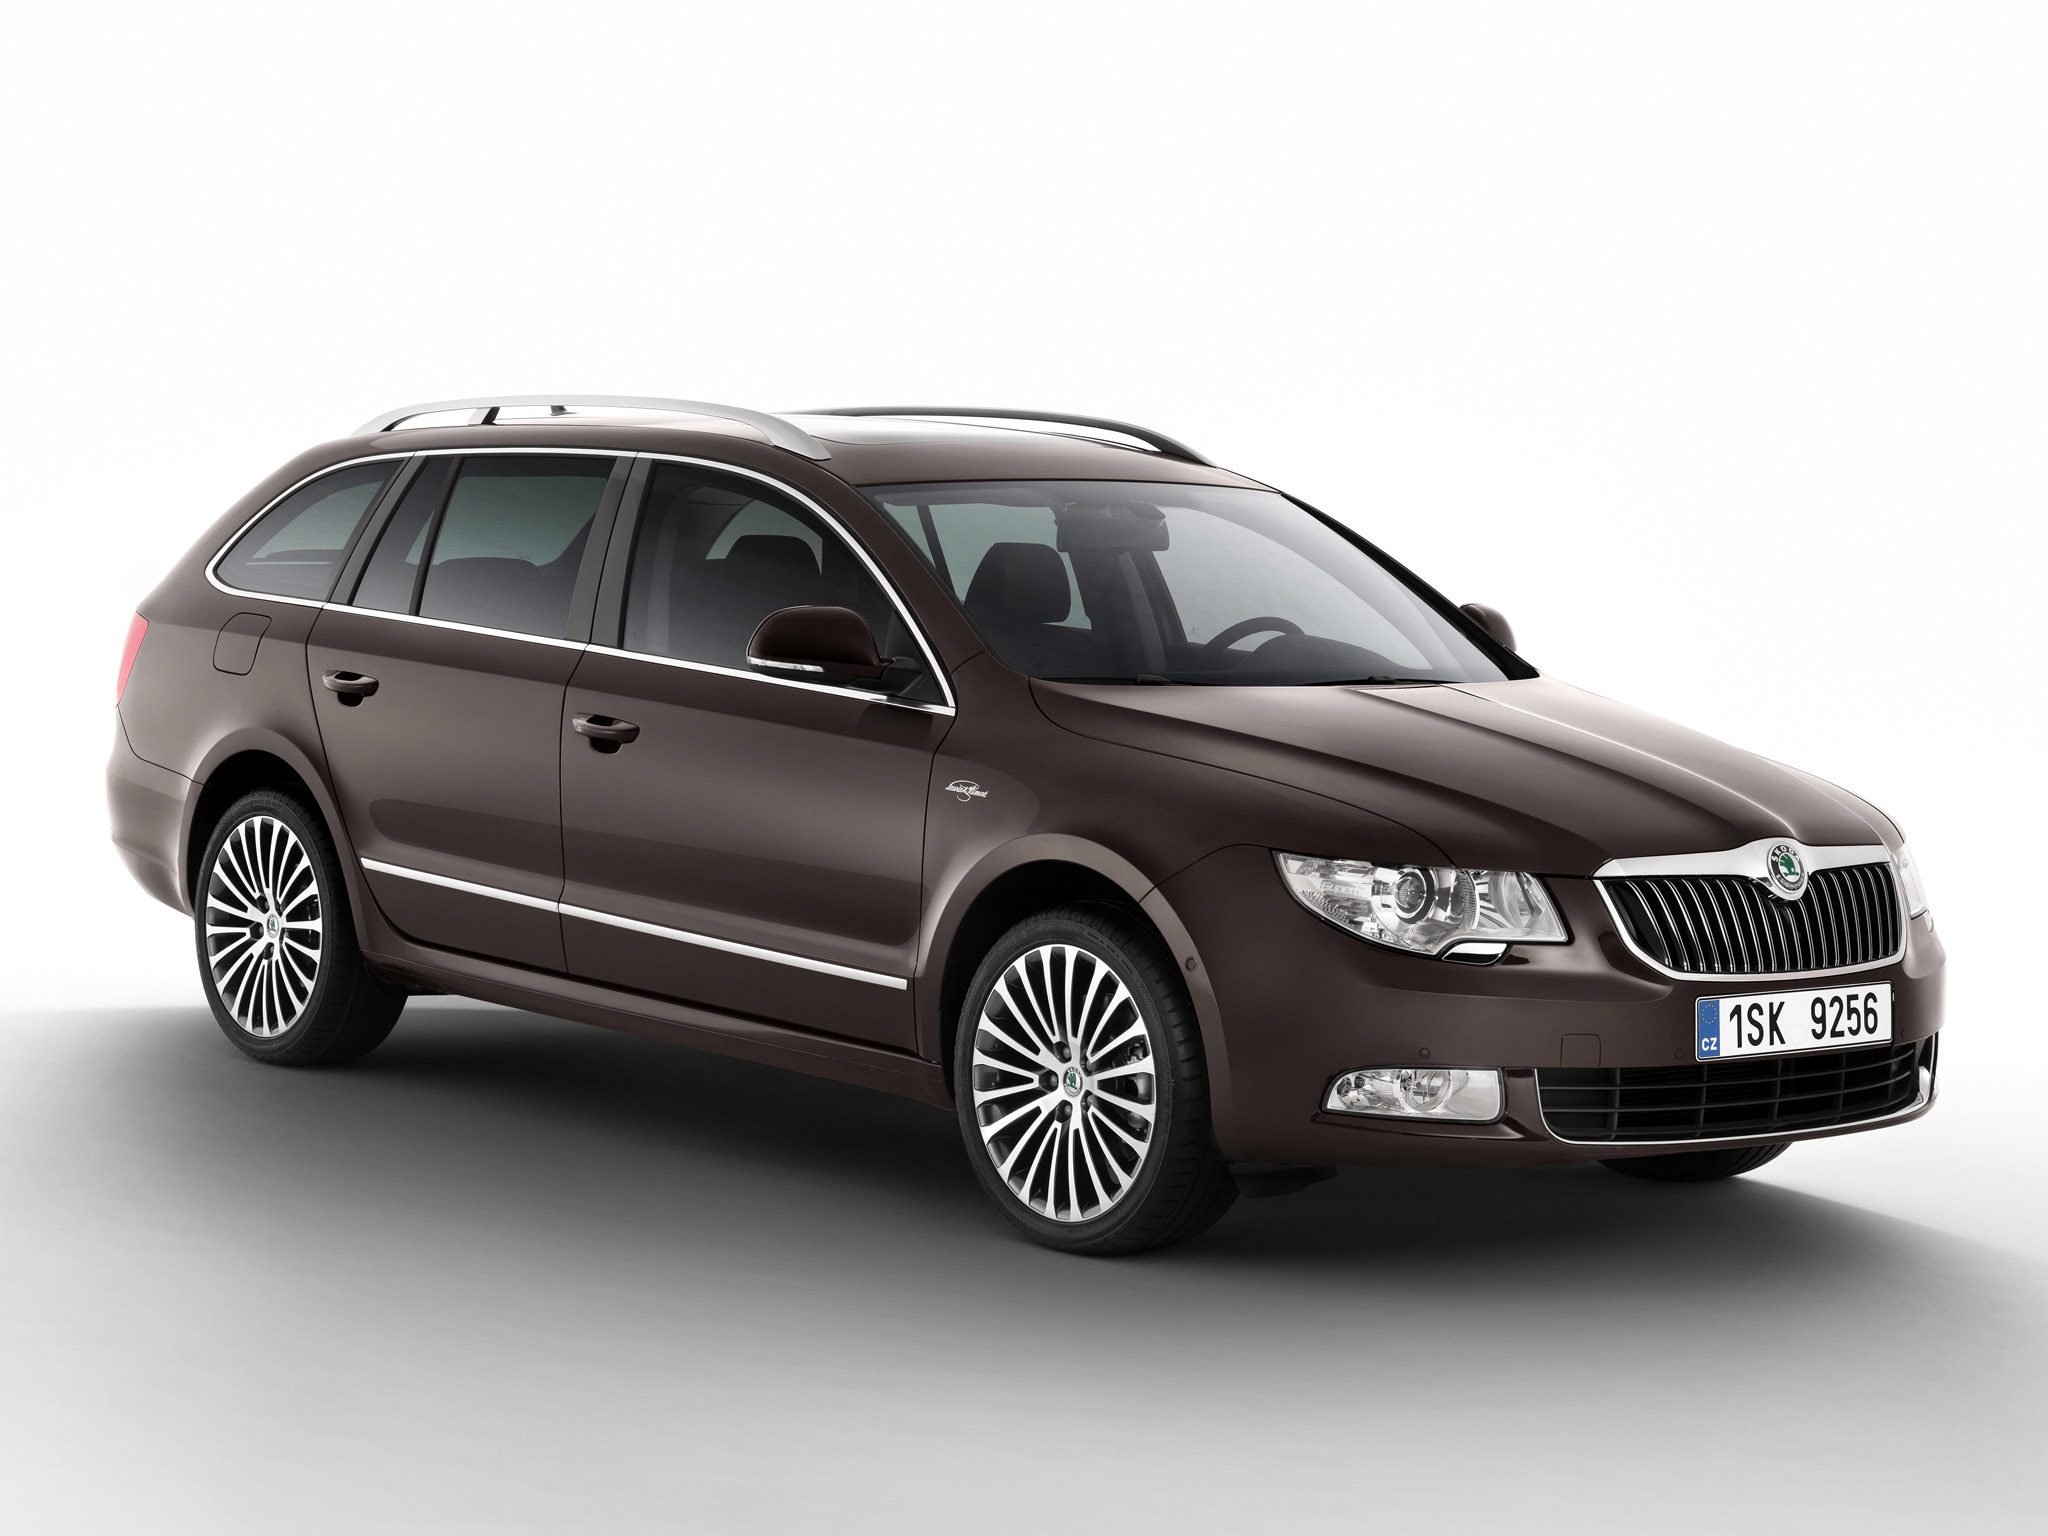 2012 skoda superb combi pictures information and specs auto. Black Bedroom Furniture Sets. Home Design Ideas